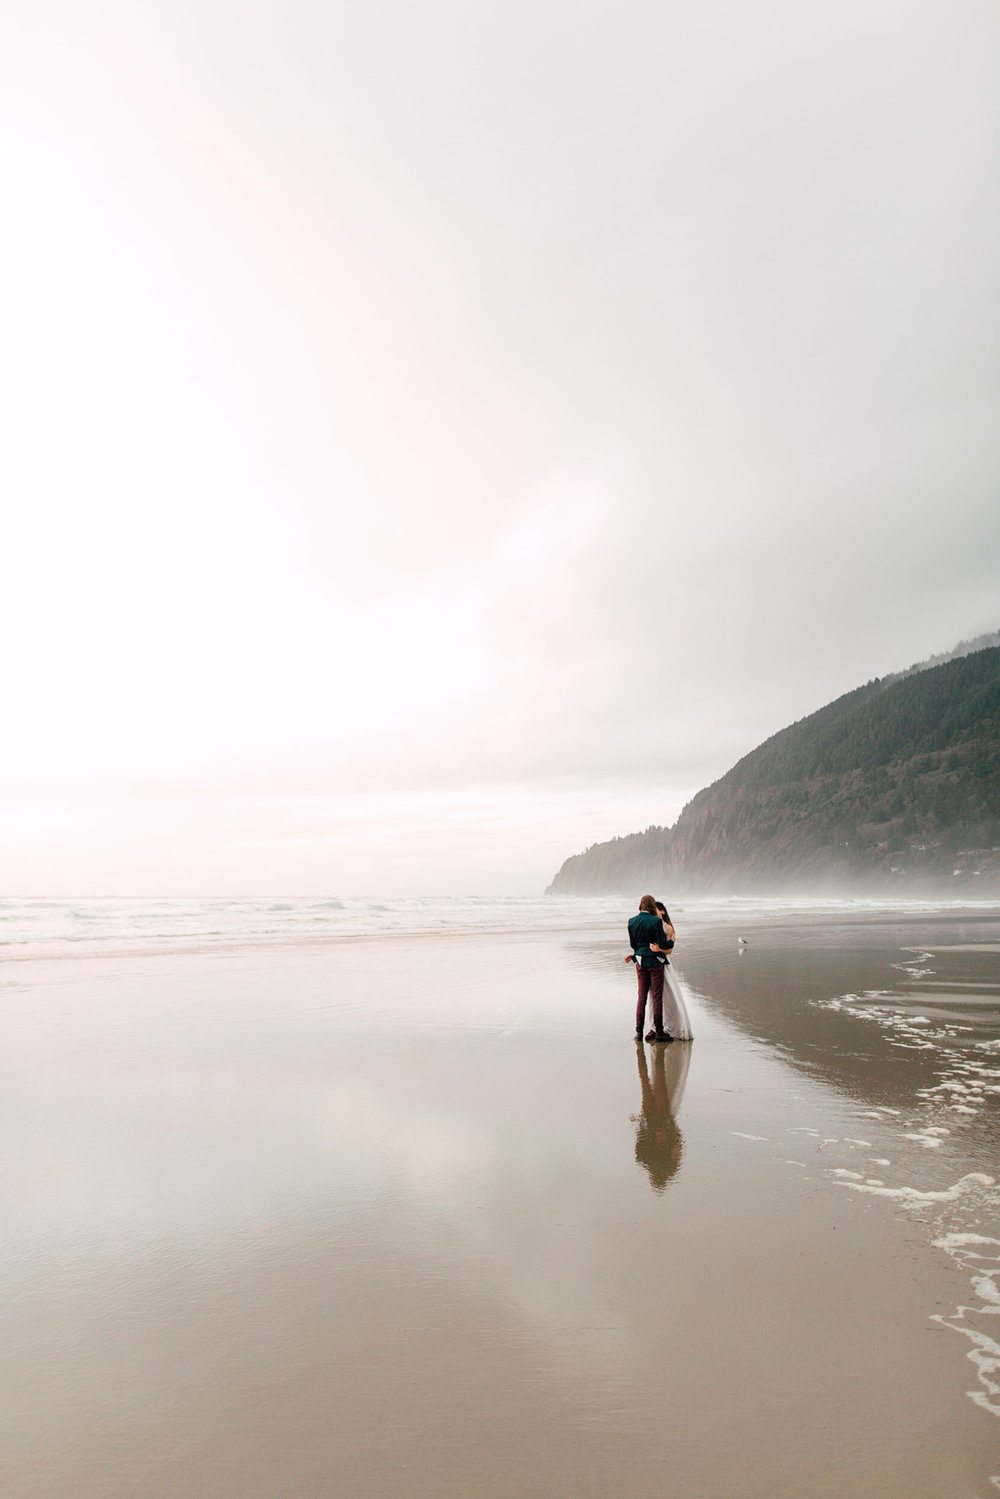 Oregon-Coast-Manzanita-Beach-Engagement-Pia-Anna-Christian-Wedding-Photography-PNW-GB-15.jpg